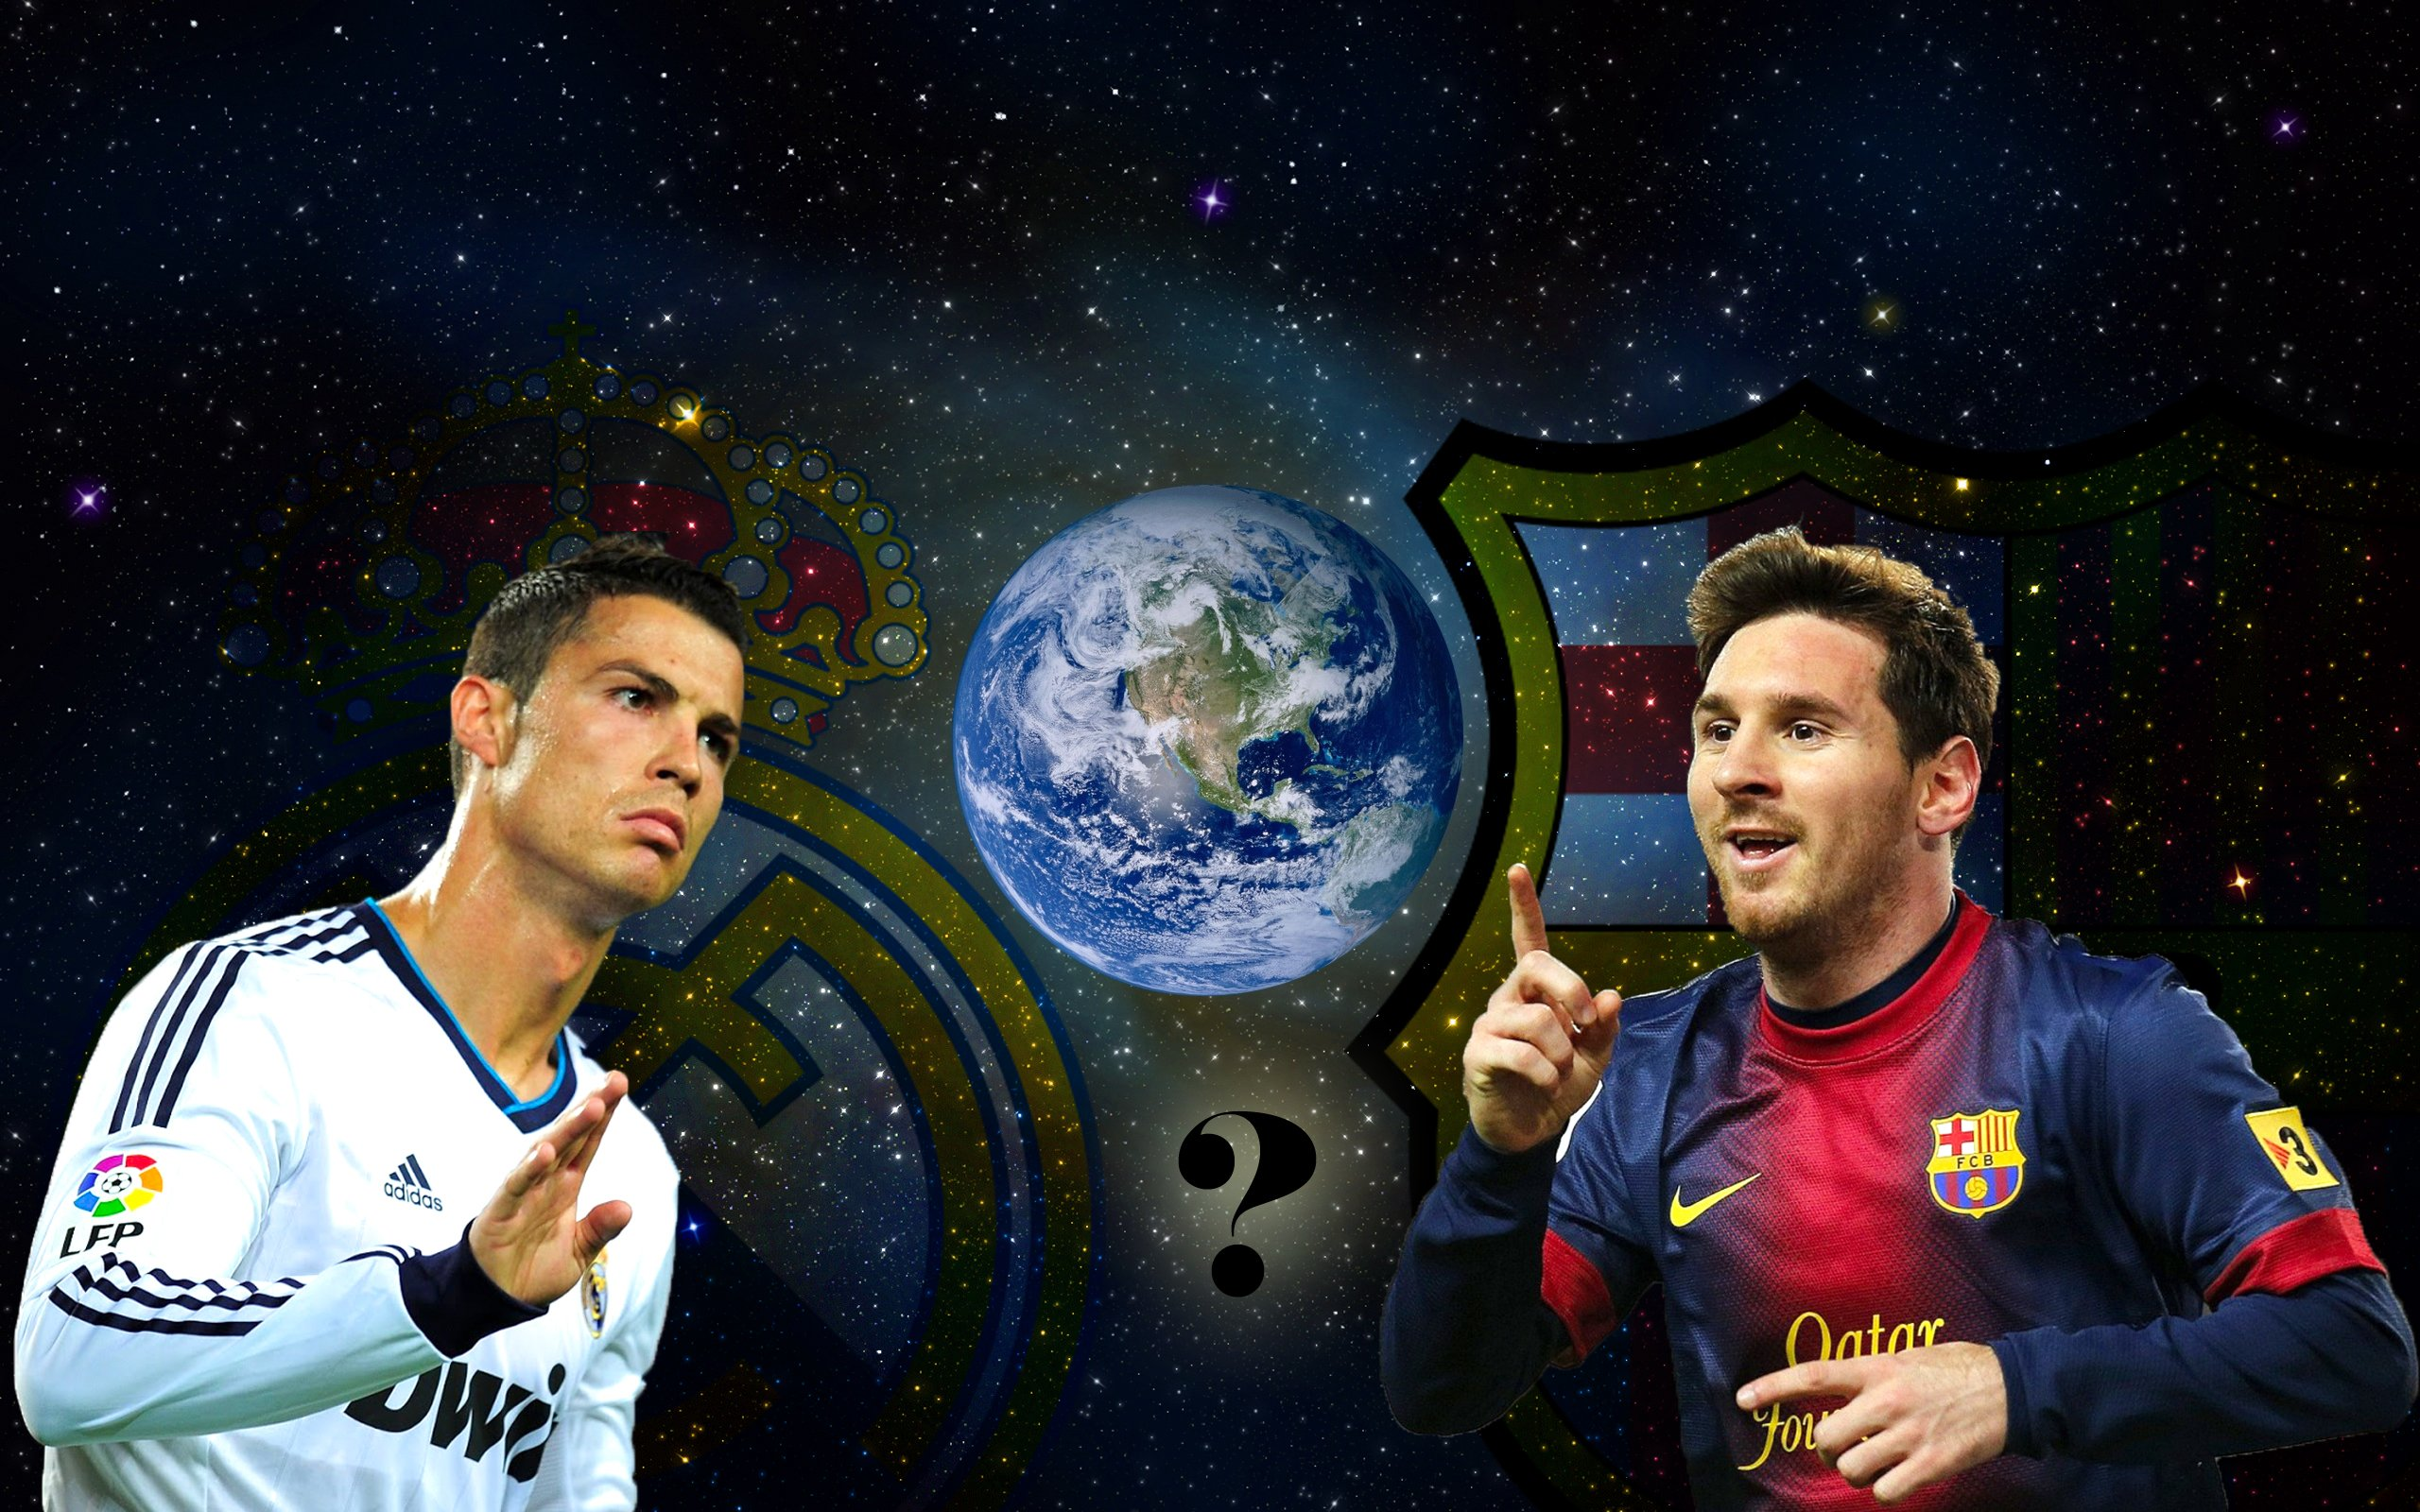 LIONEL MESSI VS CRISTIANO RONALDO wallpaper   ForWallpapercom 2560x1600